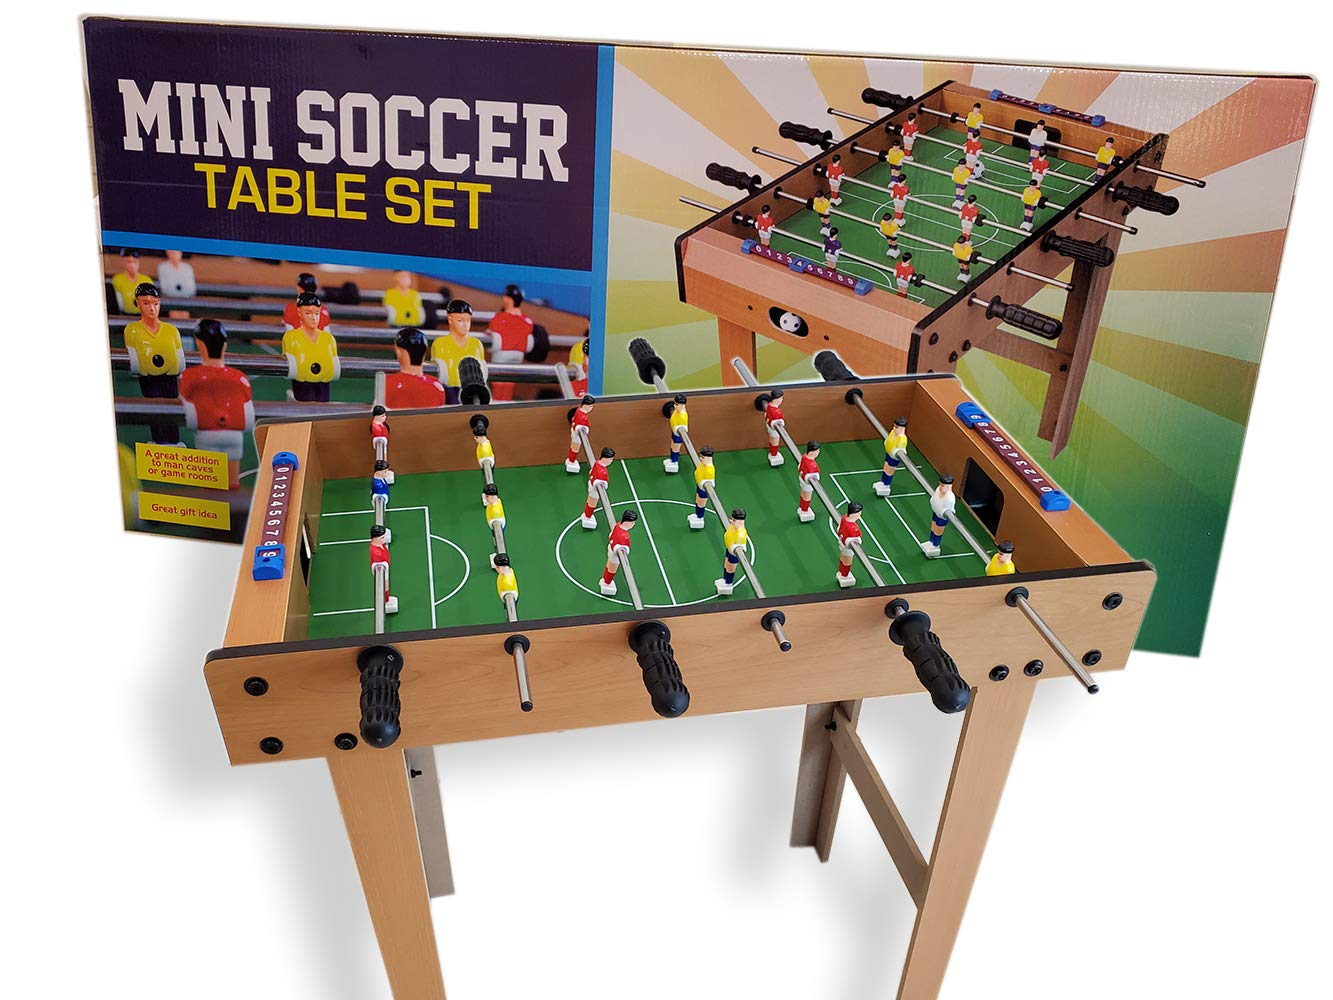 Pro Image Small Foosball Table Mini Soccer Game Room Table Set - Sports Arcade 30'' x 3.25'' x 14.5''. by Pro Image